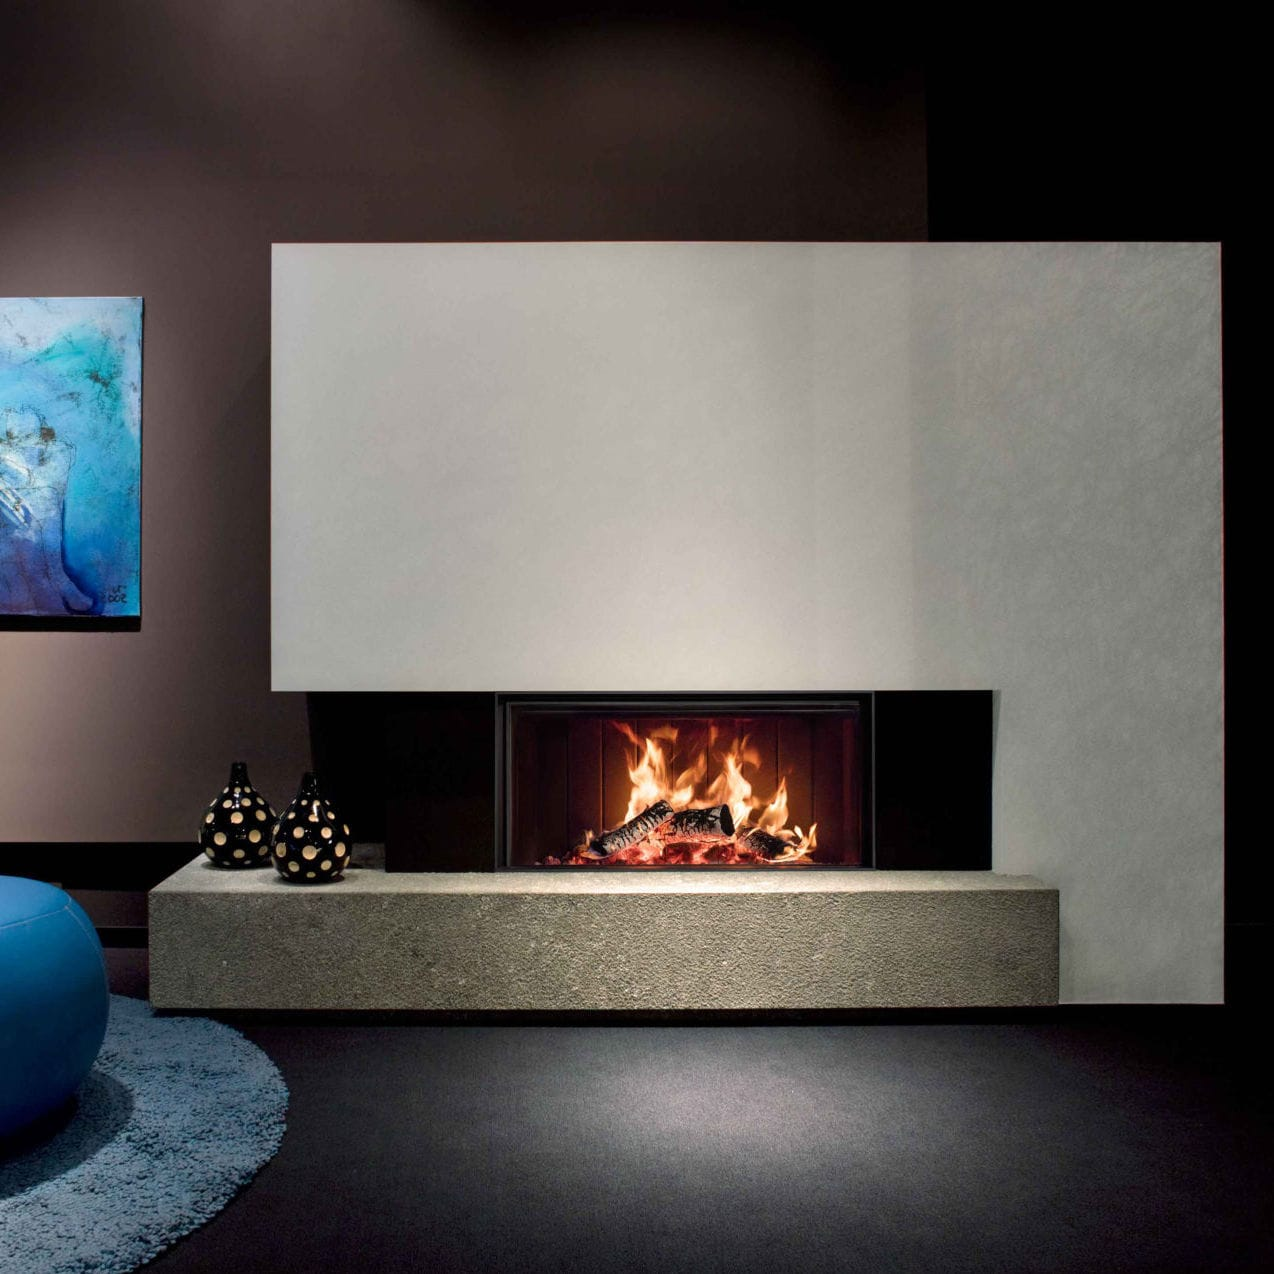 Wood Burning Fireplace Contemporary Closed Hearth Built In Kalfire Heat Pure W105 47f